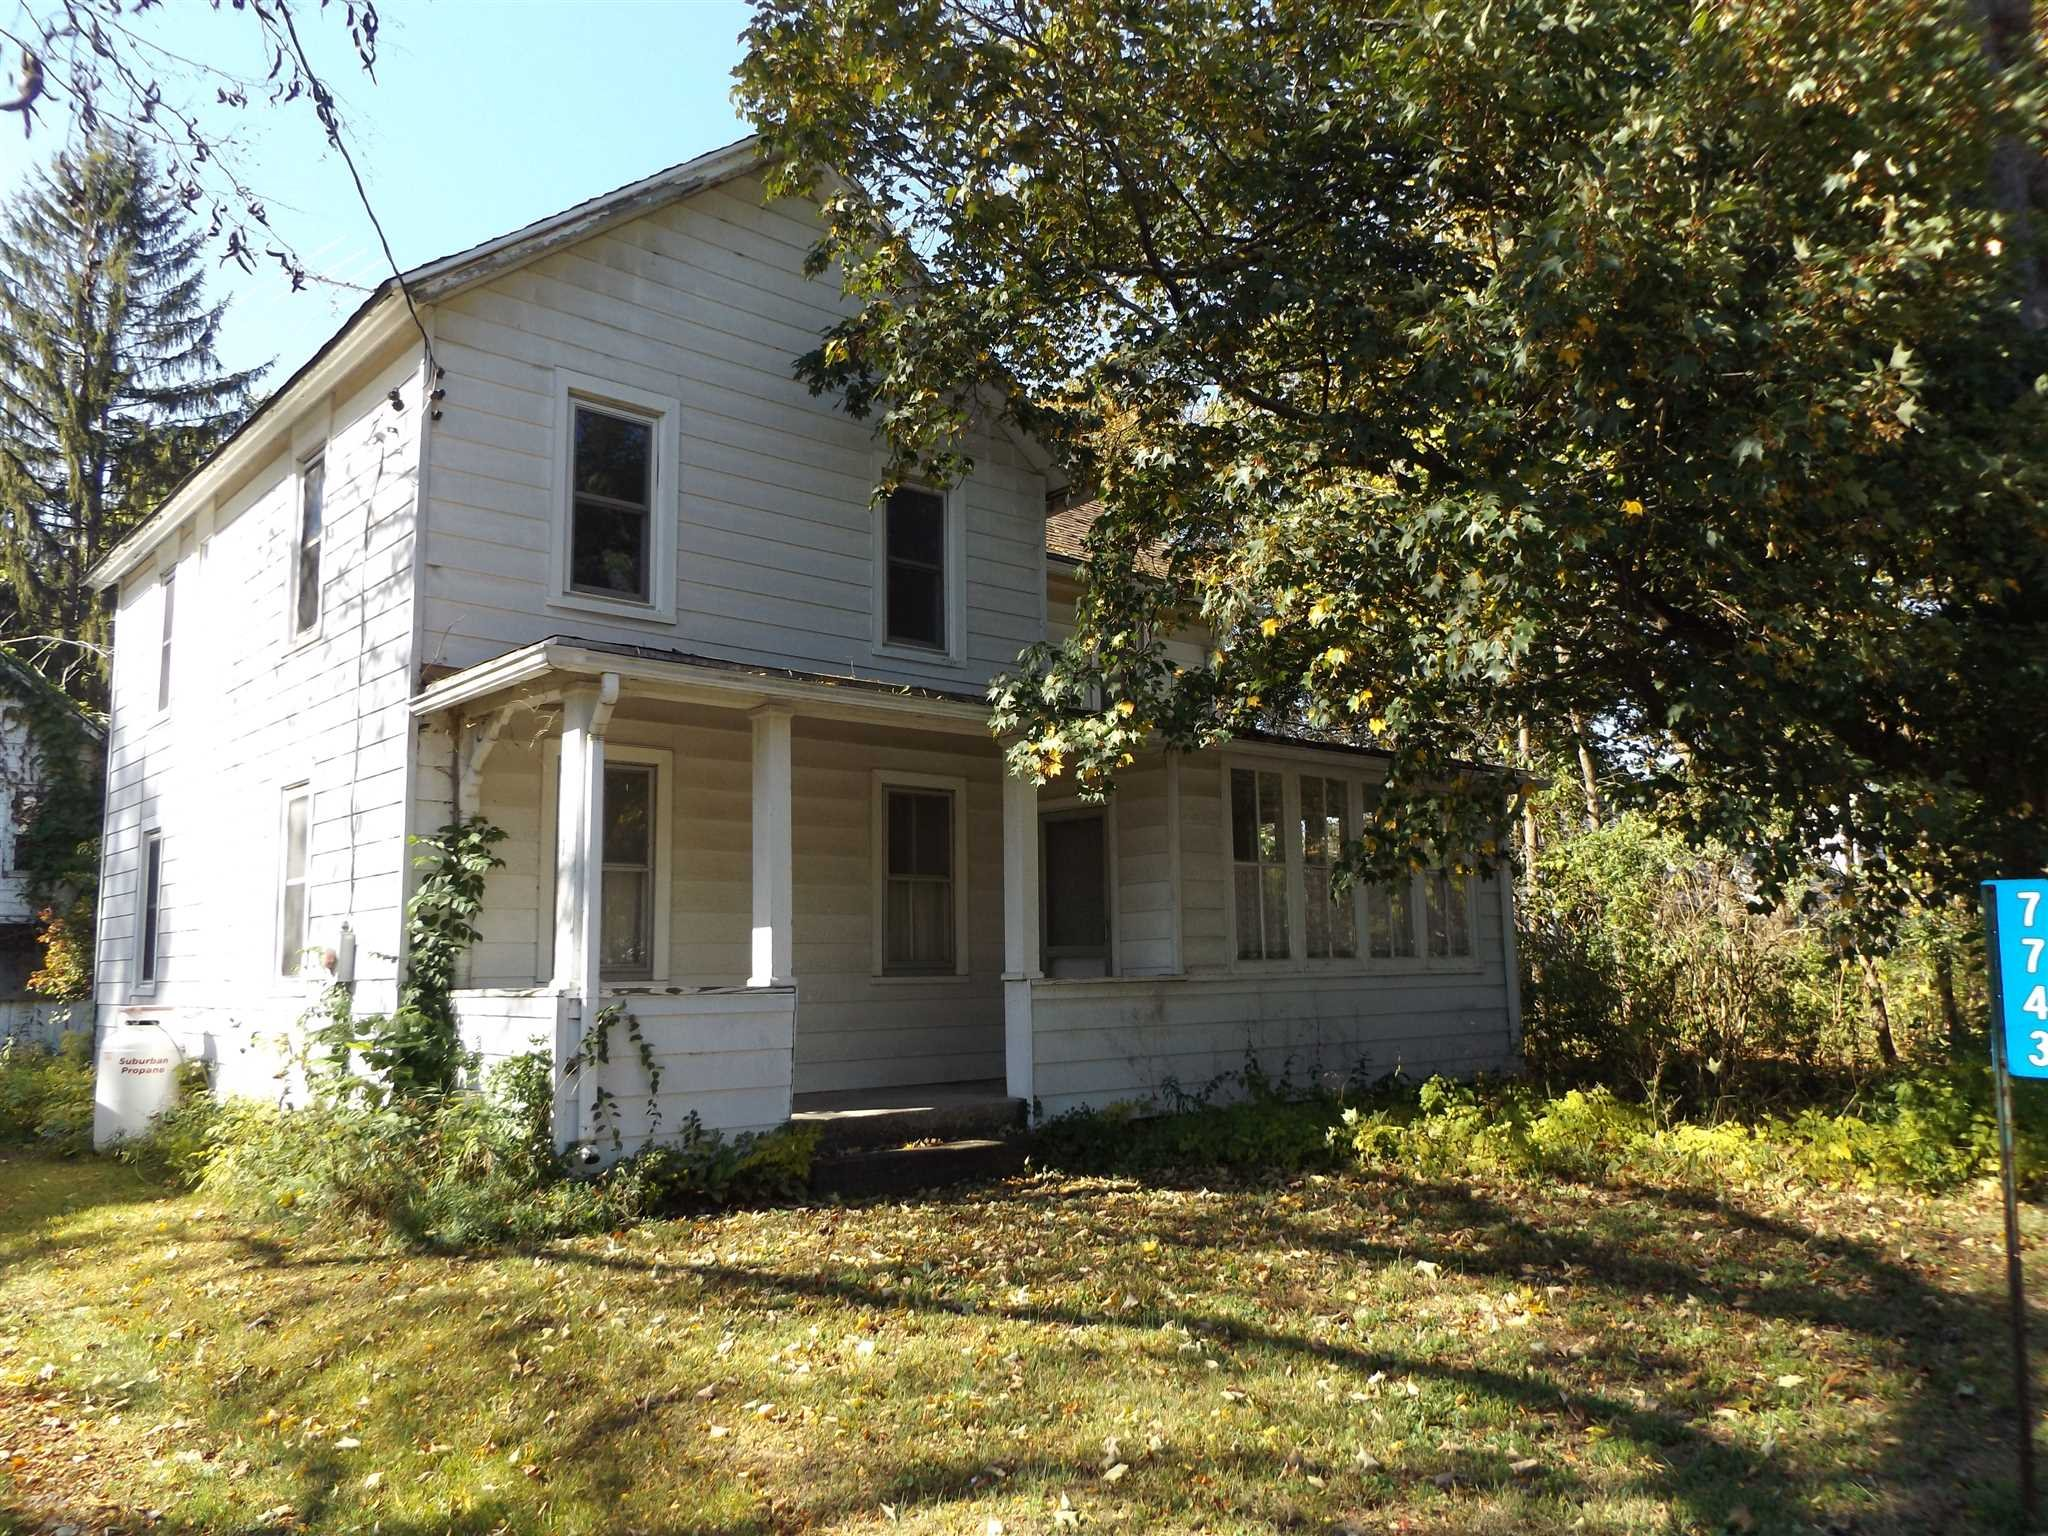 Single Family Home for Sale at 7743 MAIN Street 7743 MAIN Street Pine Plains, New York 12567 United States